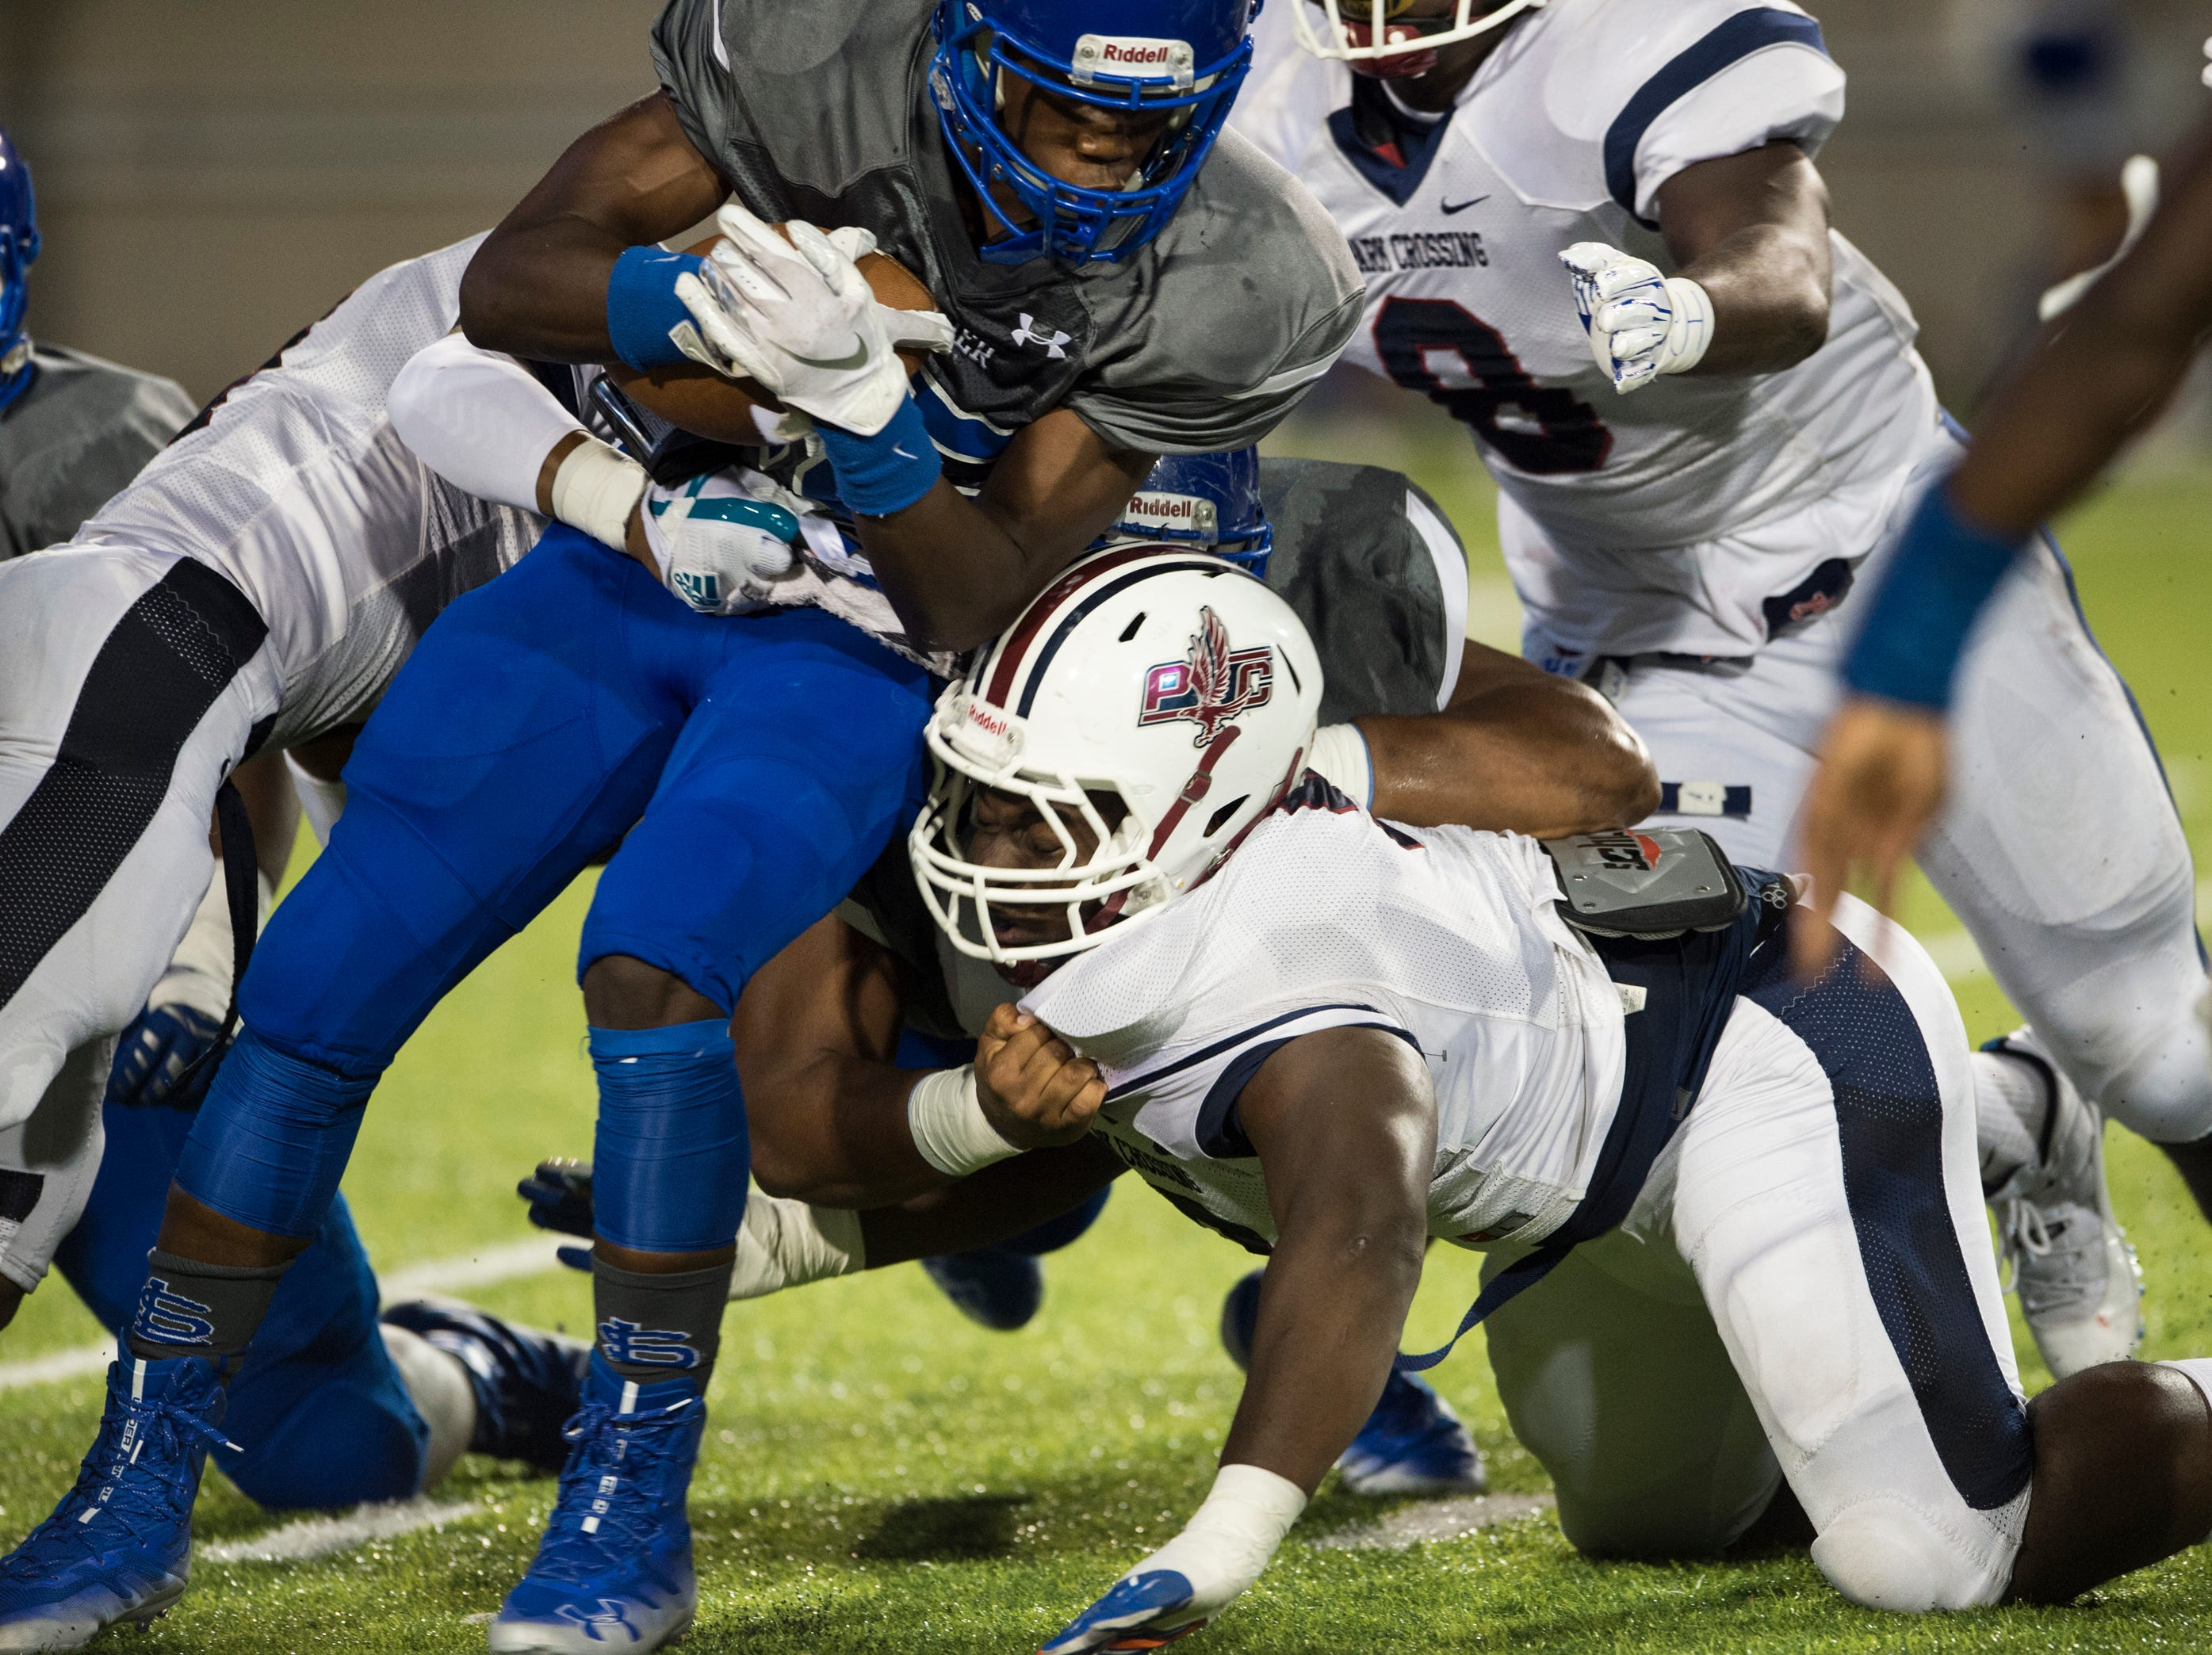 Lanier's Jacory Merritt (15) is wrapped up by a swarm of Park Crossing defenders at Cramton Bowl in Montgomery, Ala., on Friday, Sept. 21, 2018. Lanier leads Park Crossing 14-7 at halftime.